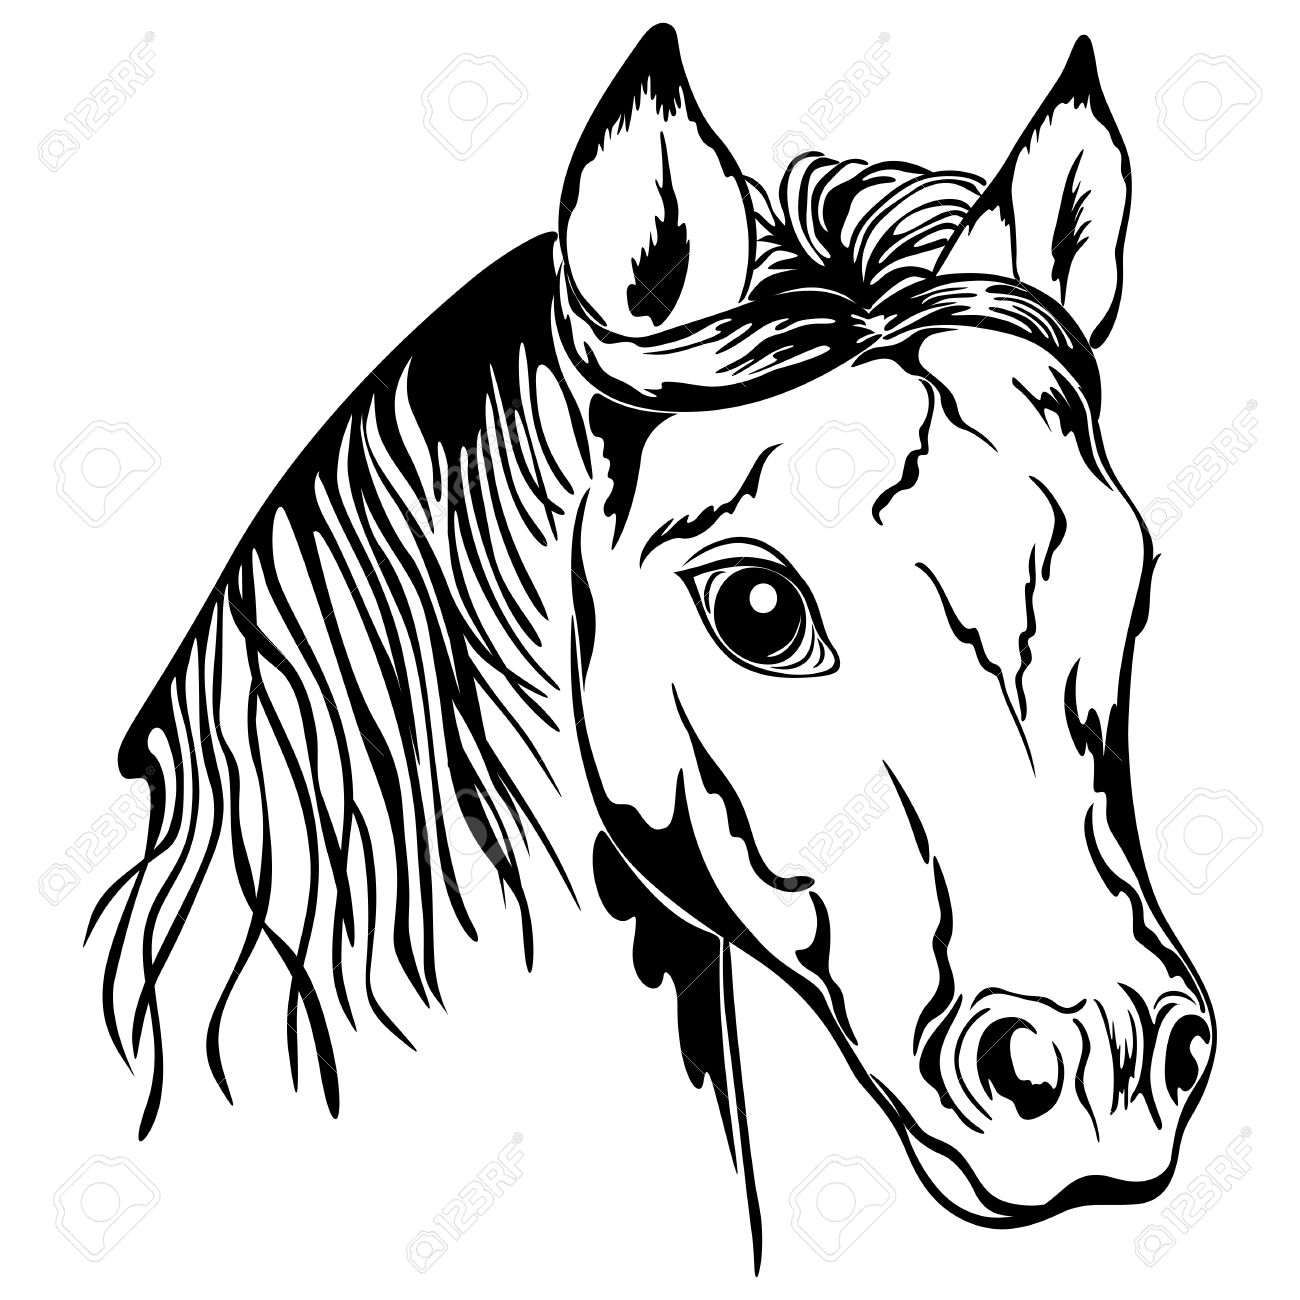 Outline Of Horse Head Black And White Royalty Free Cliparts Vectors And Stock Illustration Image 18498231